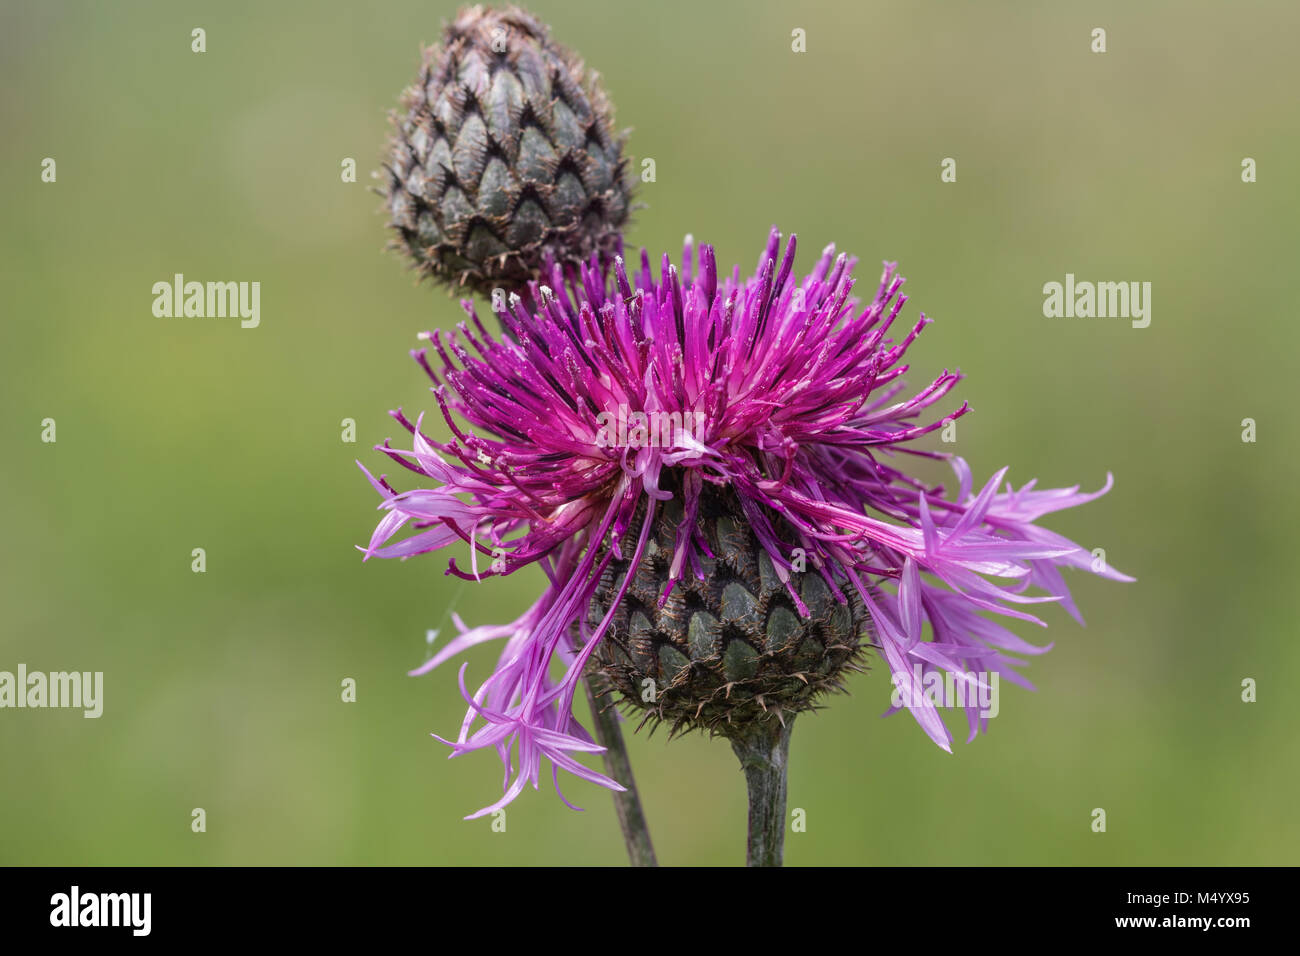 Thistle - Stock Image